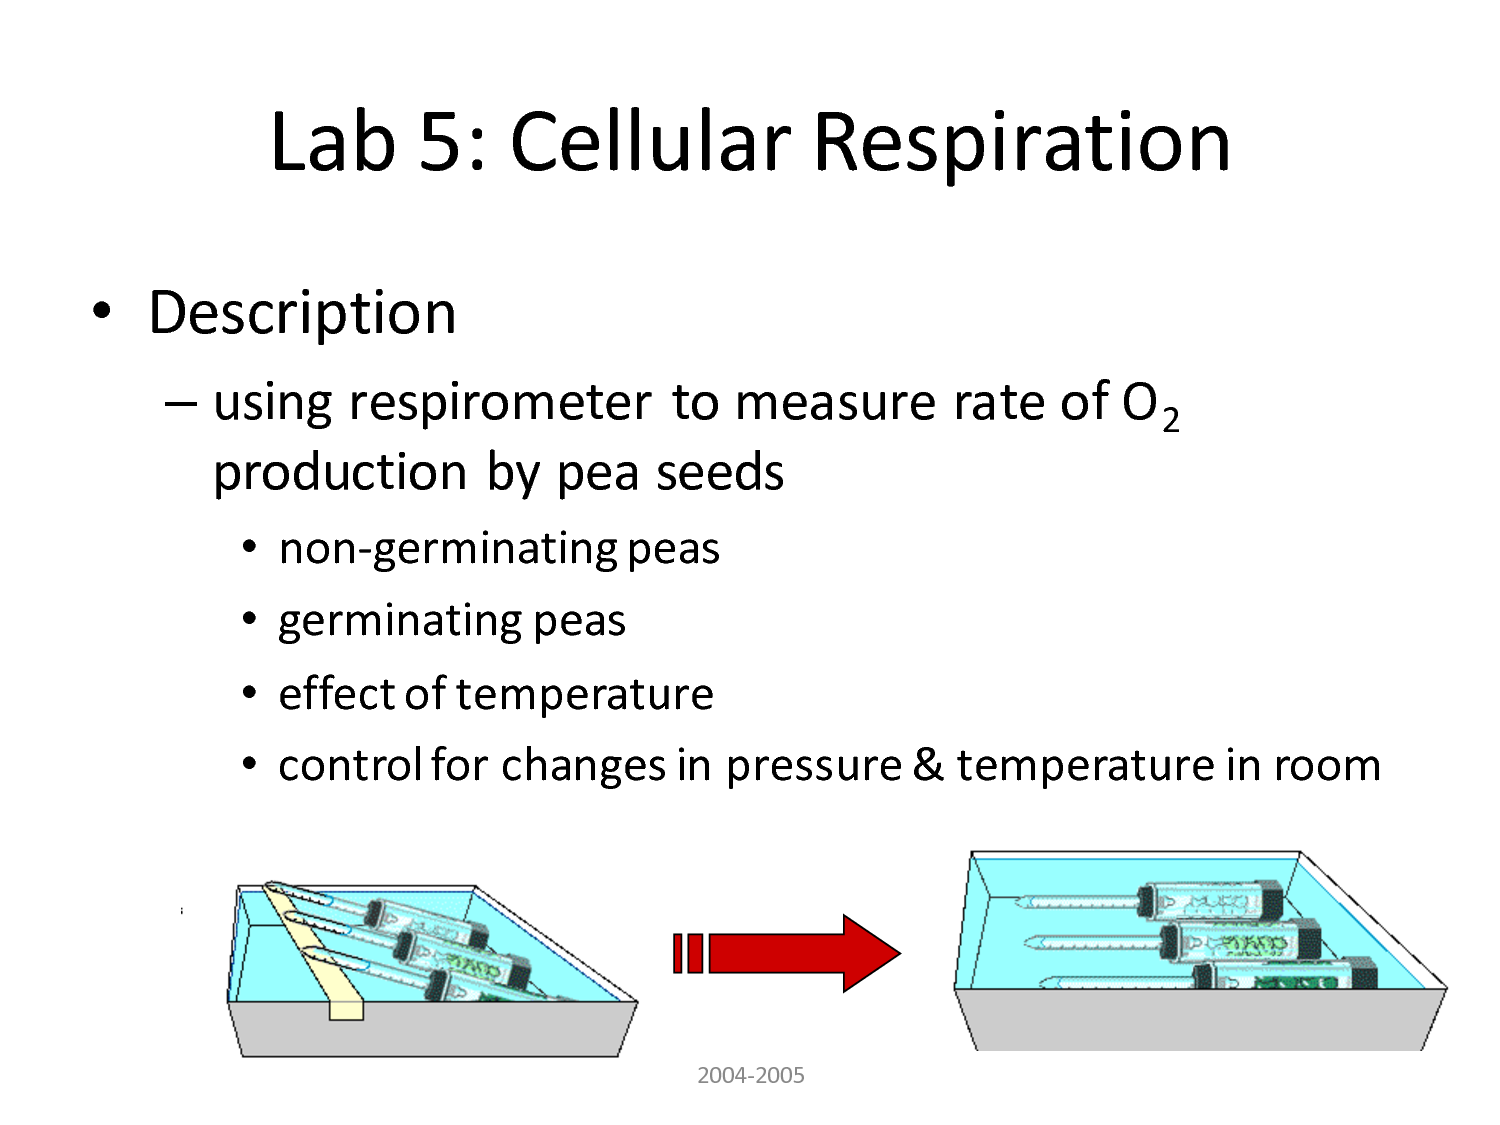 lab paq photosynthesis and respiration Photosynthesis and respirat(1) experiment photosynthesis and respiration would life in either group be possible without respiration wwwlabpaqco m.